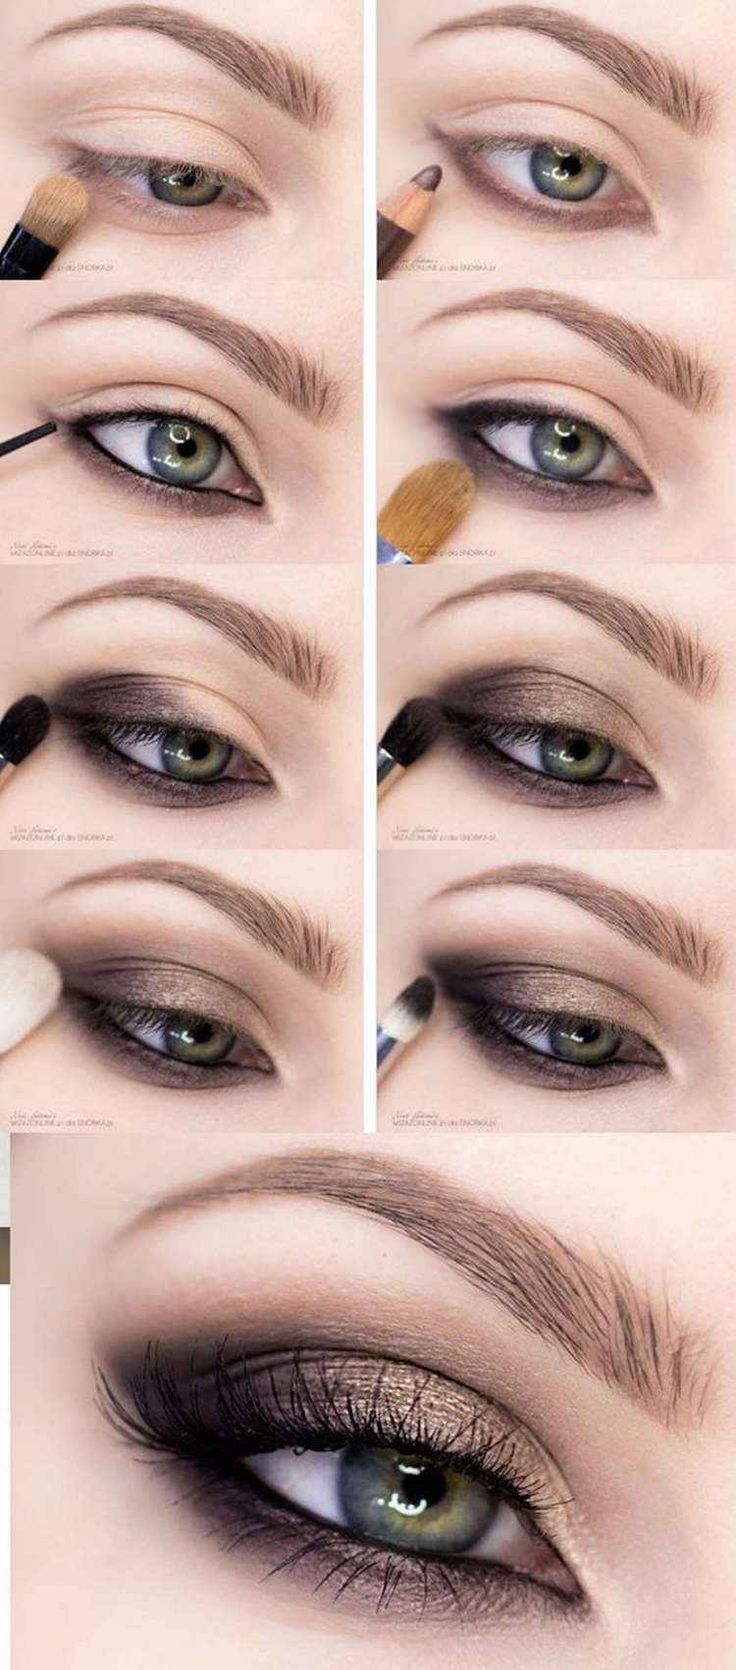 Prime conseils pour réussir son maquillage smoky eyes